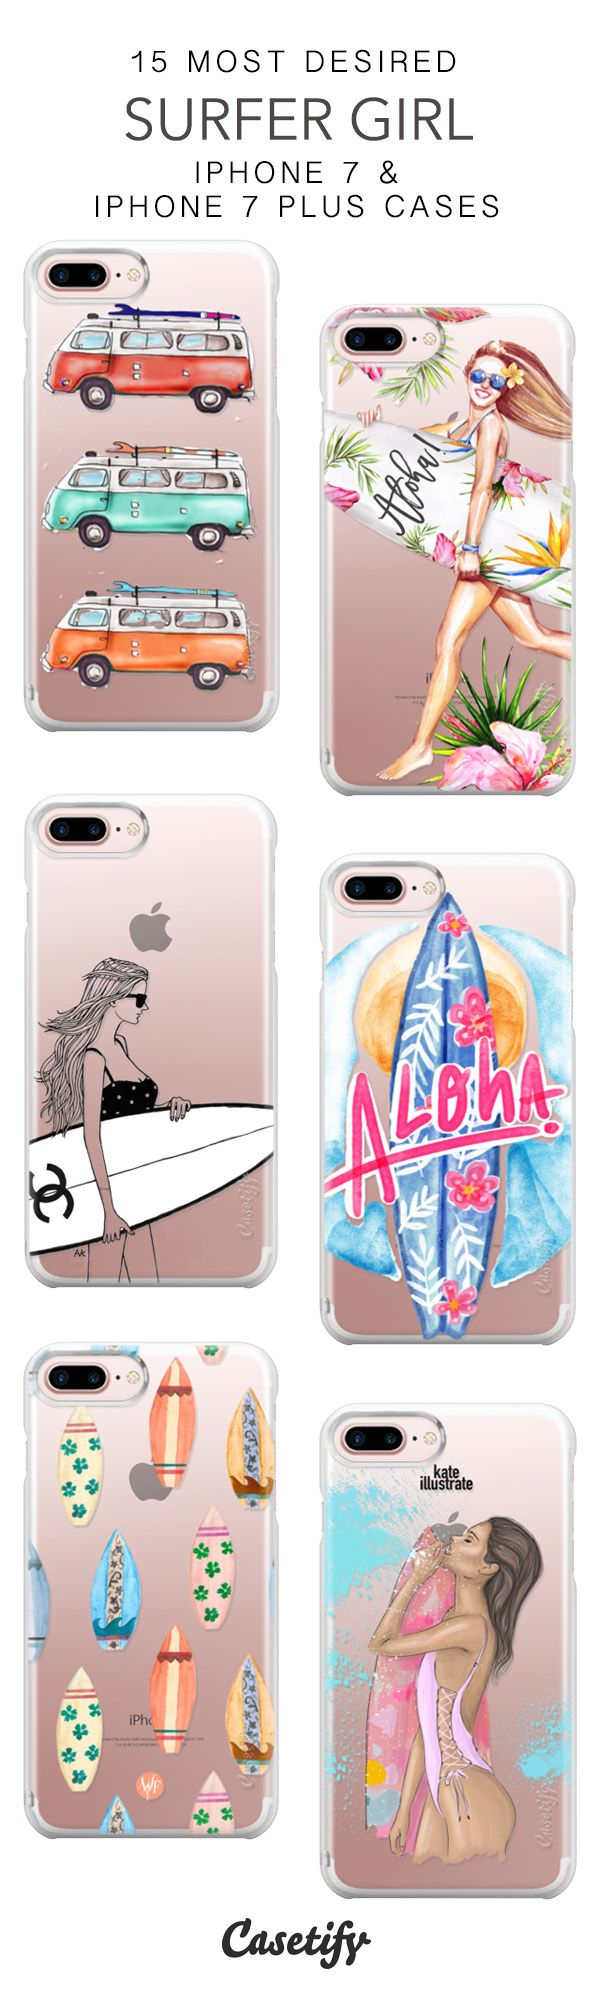 15 Most Desired Surfer Girl Protective iPhone 7 Cases and iPhone 7 Plus Cases. More Summer Surfing iPhone case here > https://www.casetify.com/collections/top_100_designs#/?vc=q7rmaBUZnX